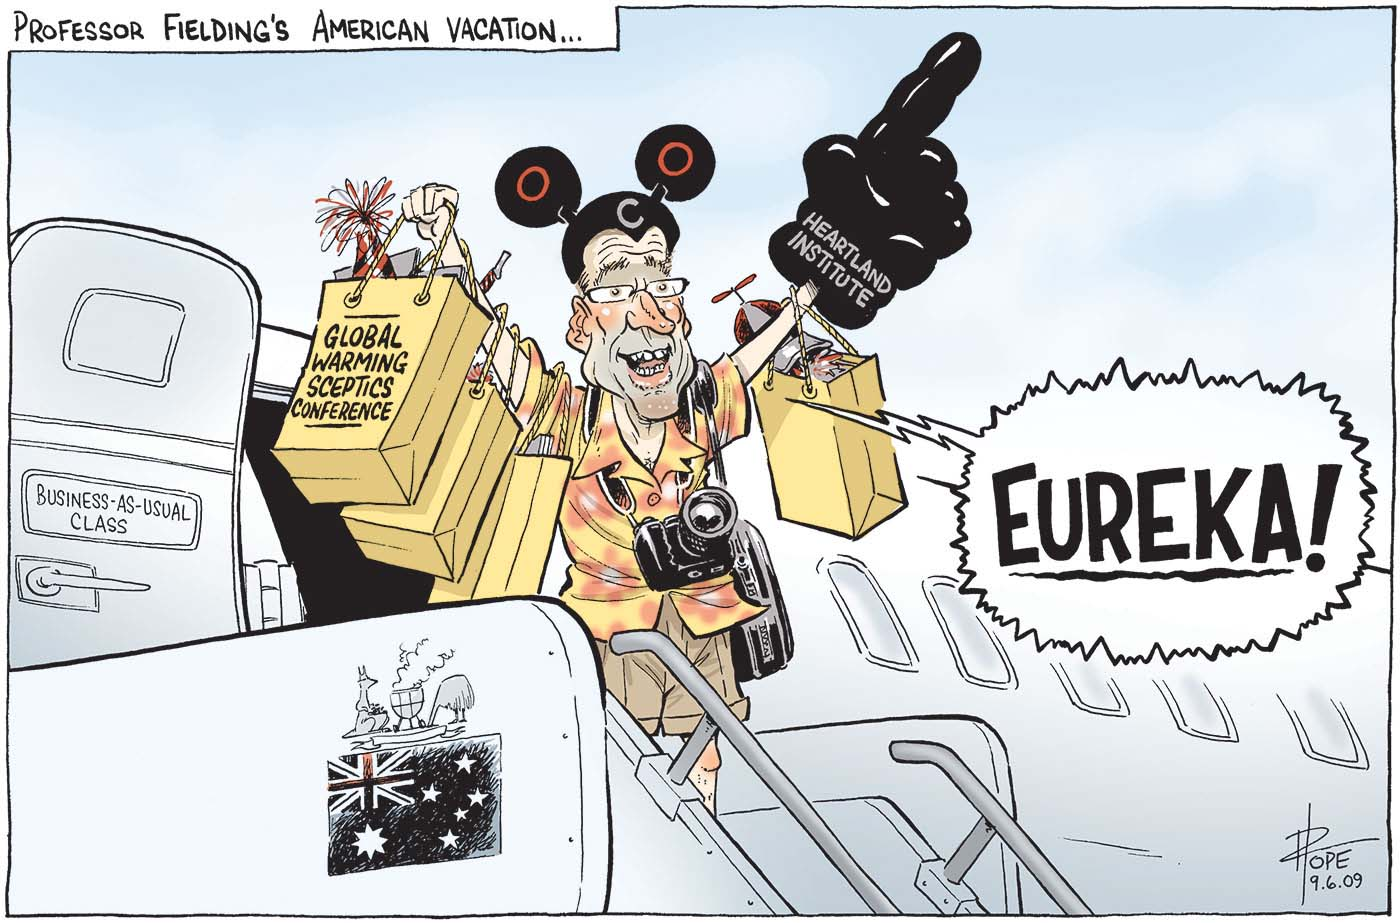 A colour cartoon titled 'Professor Fielding's American vacation ...'. Steve Fielding emerges from an aeroplane and stands at the top of the stairway, dressed as a tourist. He shouts 'Eureka!', carries 'Global Warming Sceptics Conference' showbags and wears Mickey Mouse style ears and an oversized 'Heartland Institute' foam hand. The plane door is labelled 'Business-as-usual' class and the Australian flag and coat of arms appears on the side of the stairs. The coat of arms shows the kangaroo standing beside a smoking kettle barbecue, its pouch full of what looks like coal, while the emu buries its head. - click to view larger image